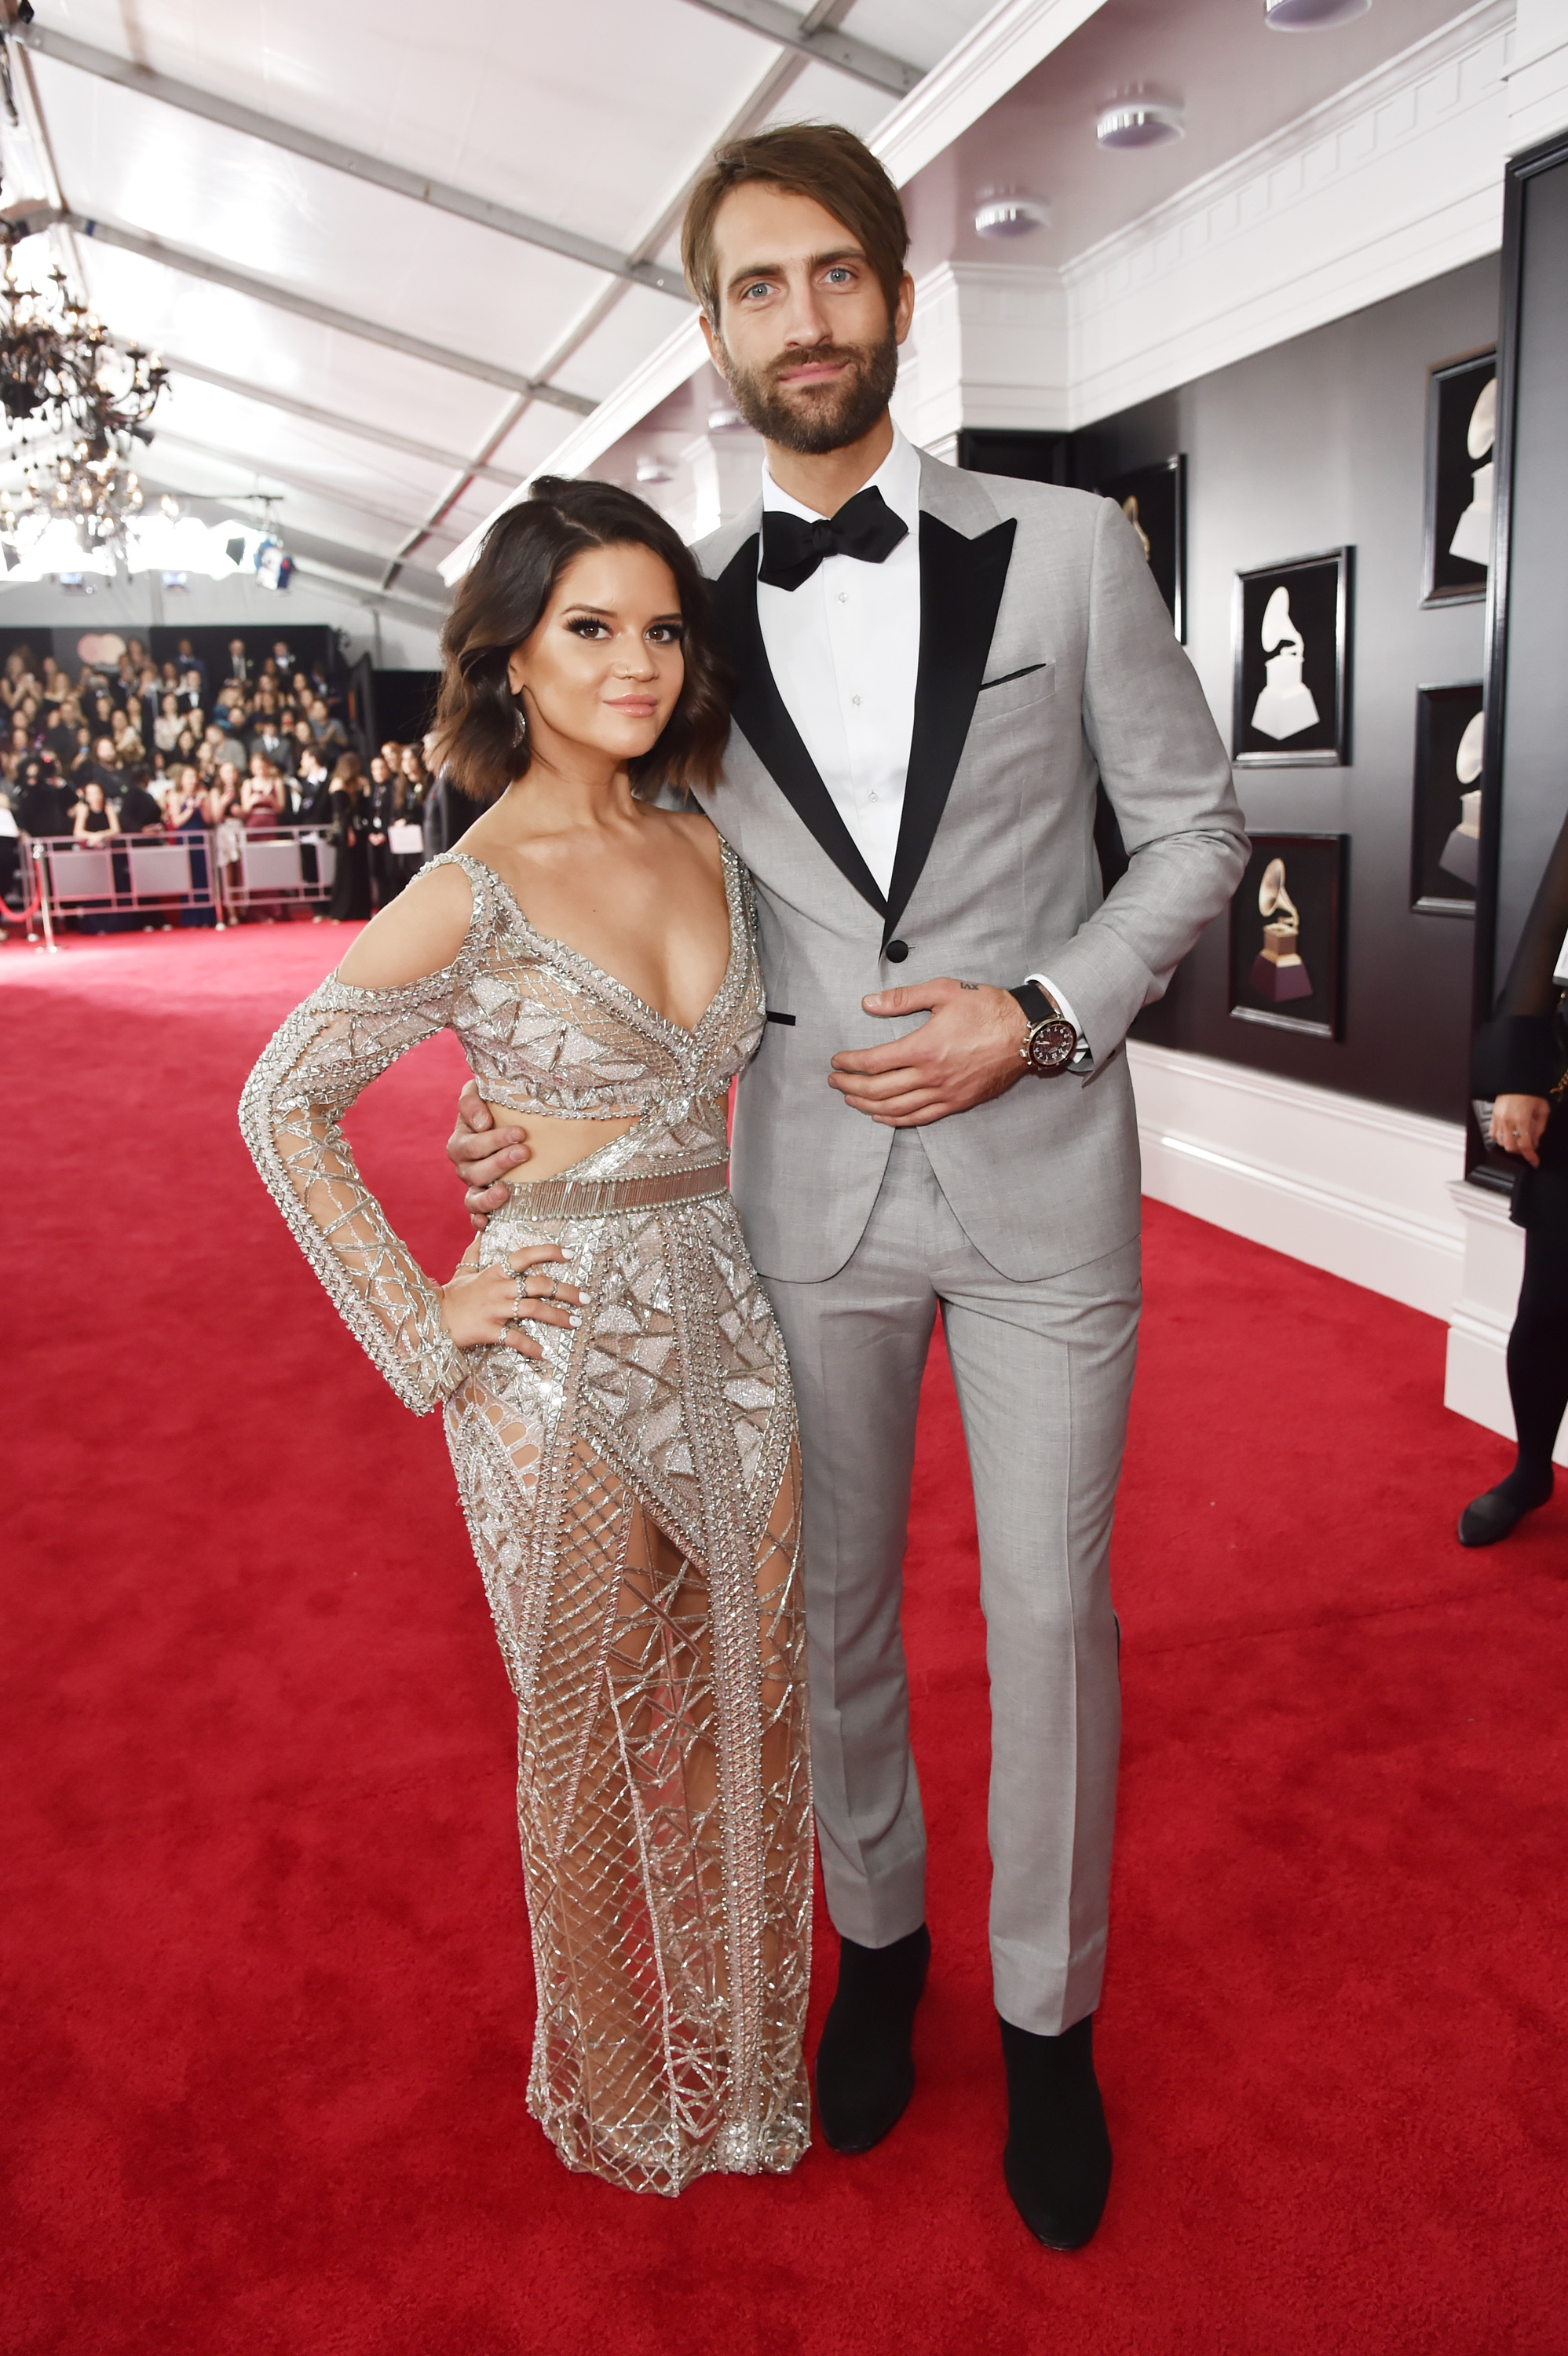 Grammys 2018 Celebrity Couples on the Red Carpet: Photos